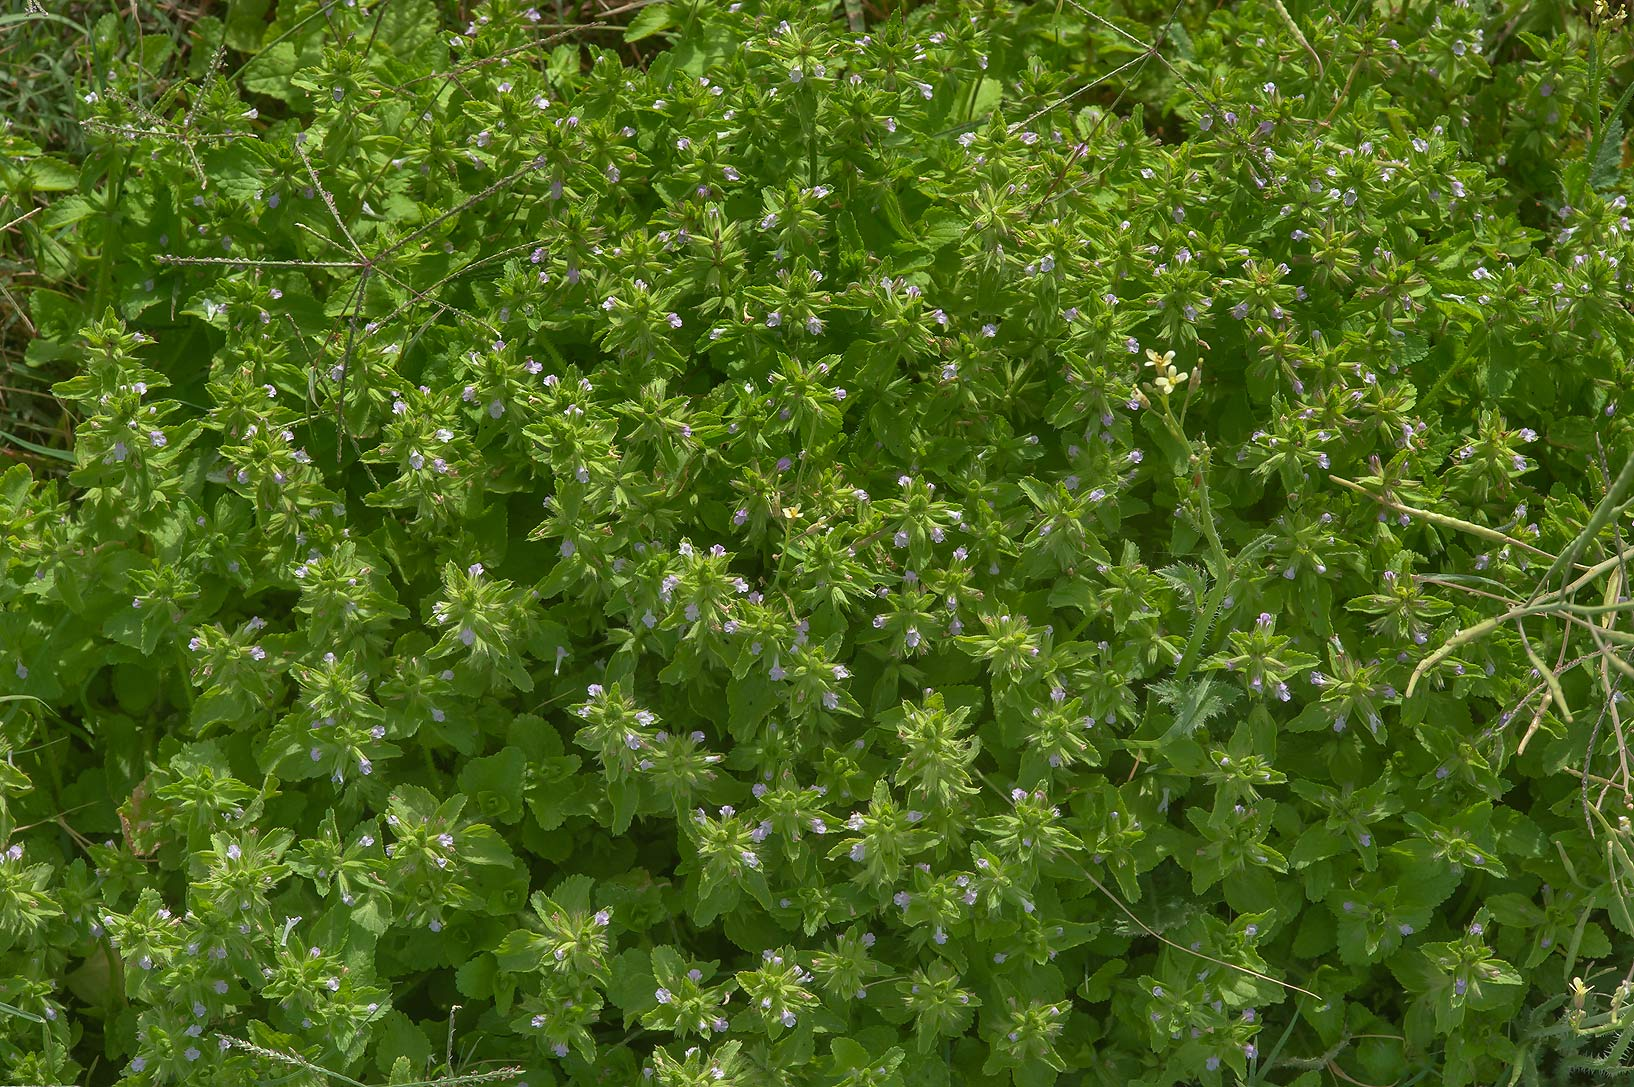 Carpet of staggerweed (Stachys arvensis) on a...in Irkhaya (Irkaya) Farms. Qatar